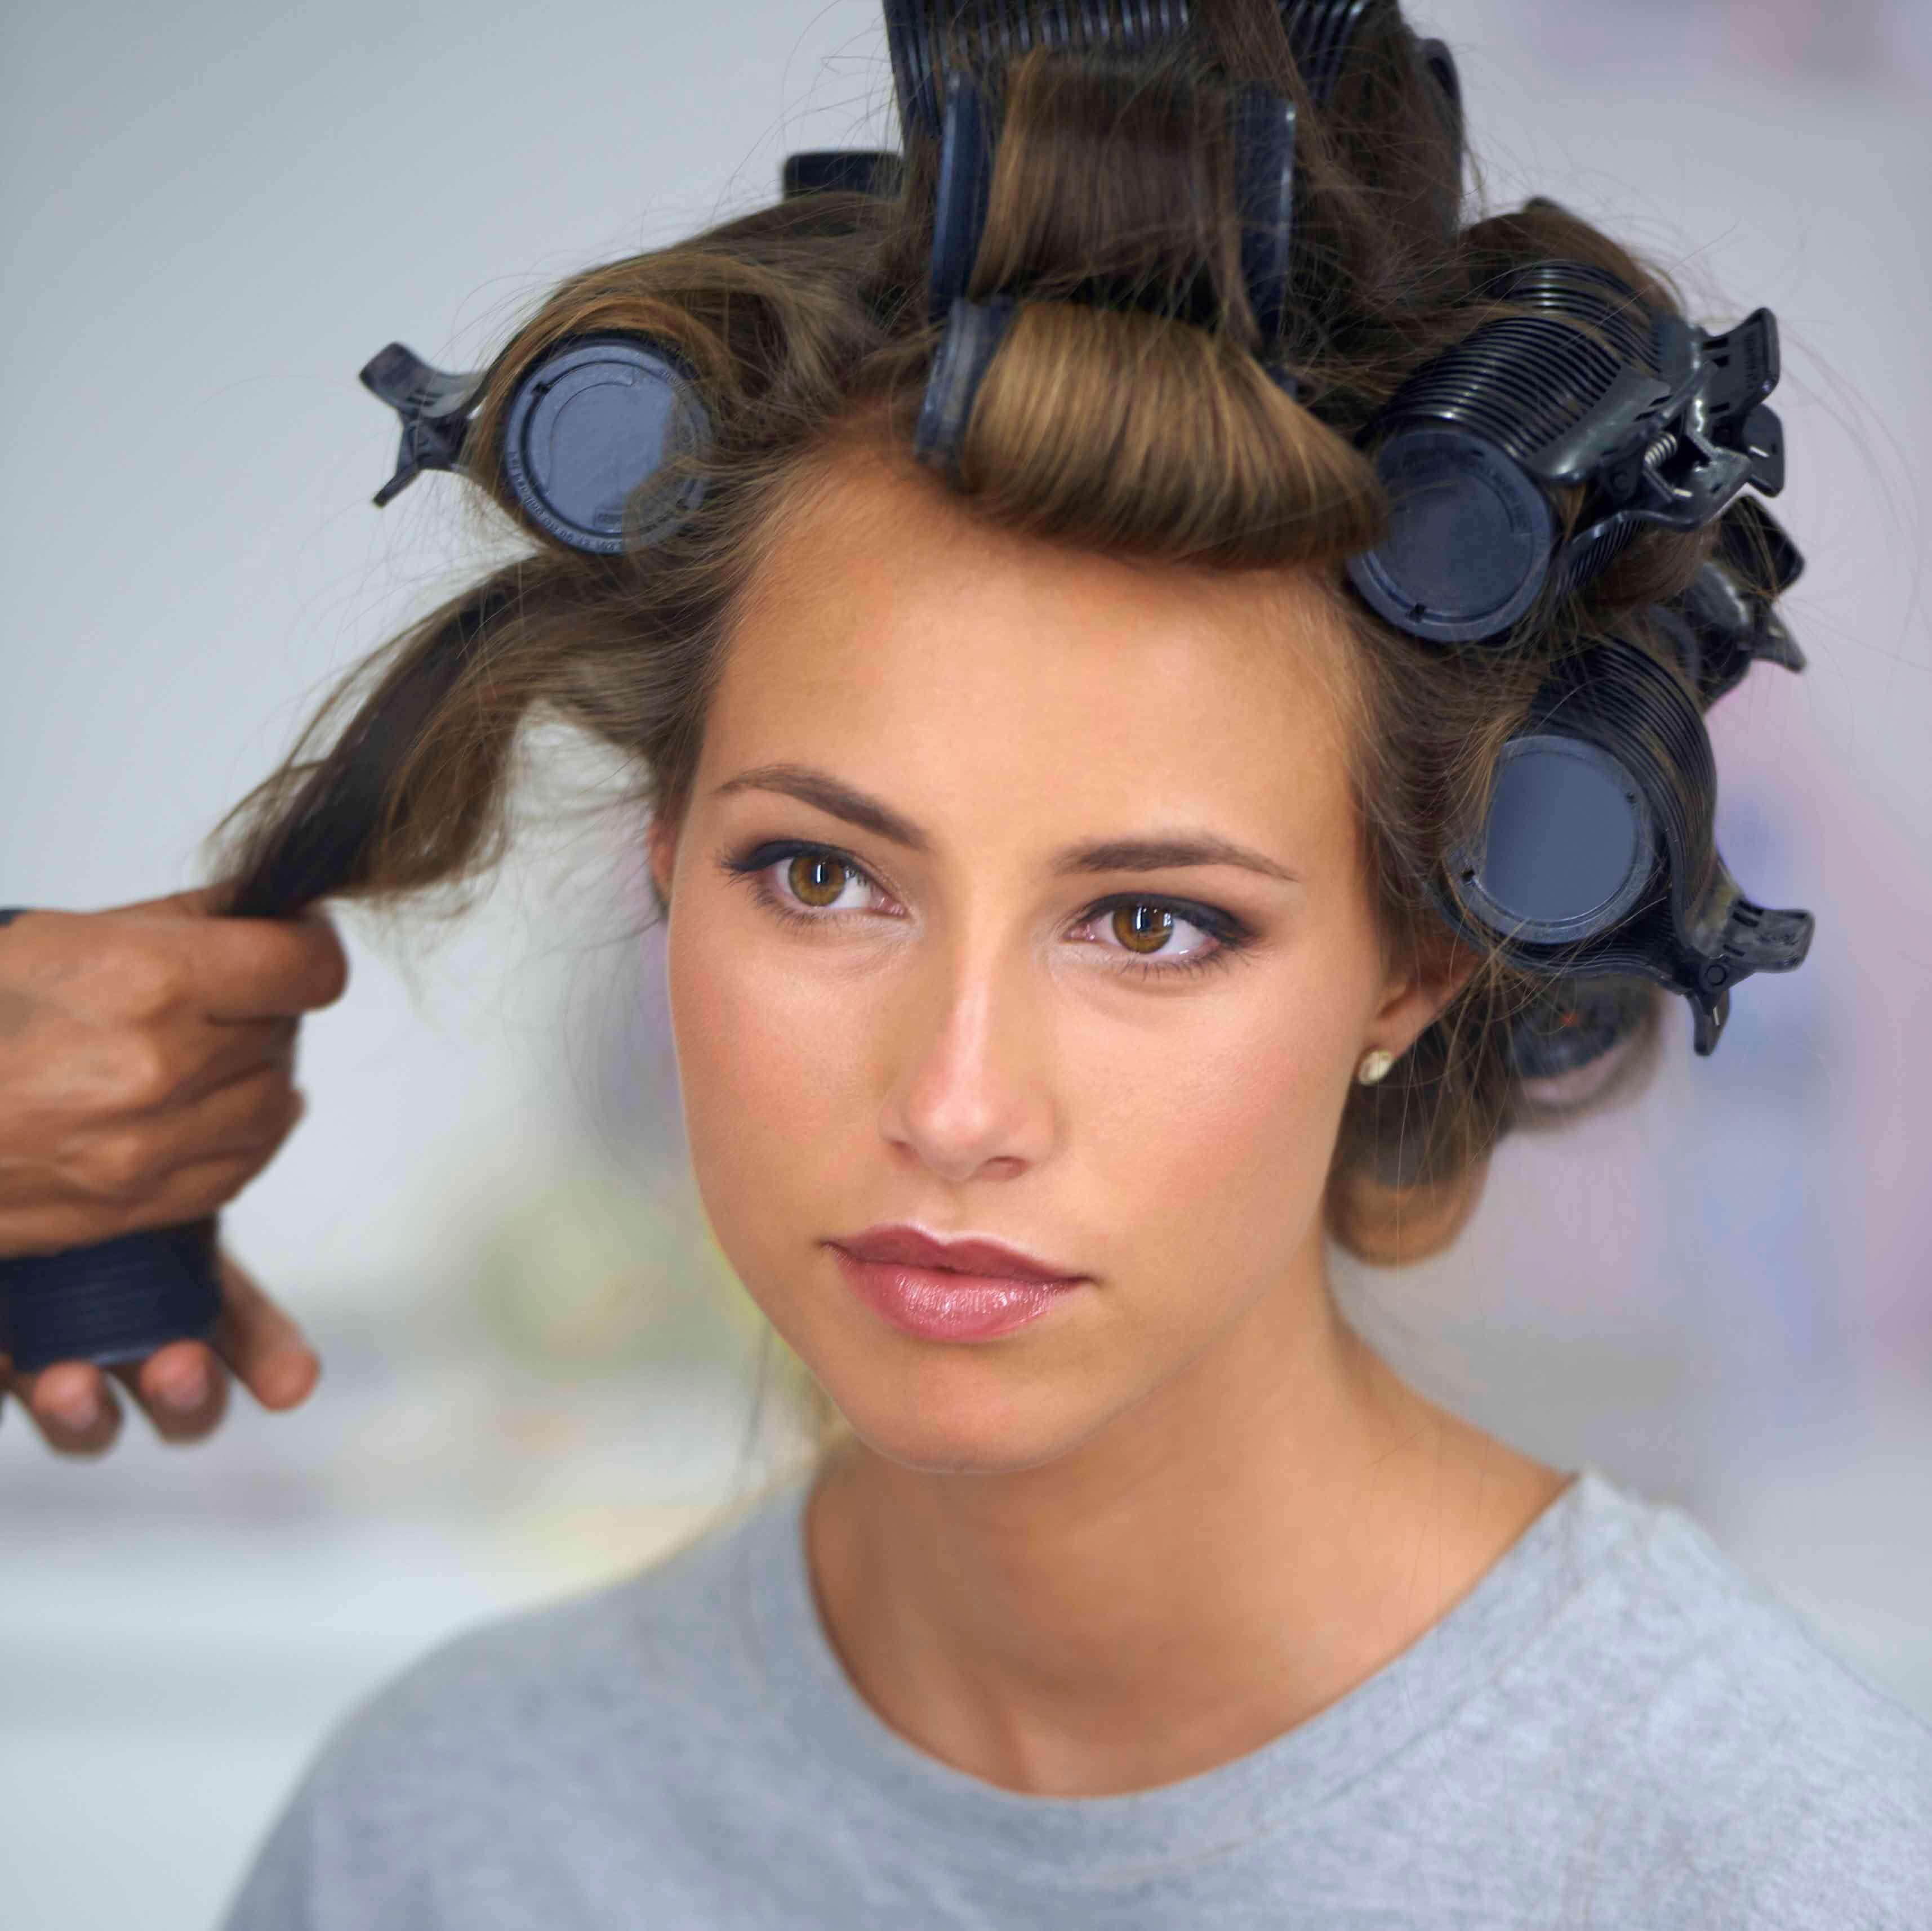 How to Style Hair With Hot Rollers